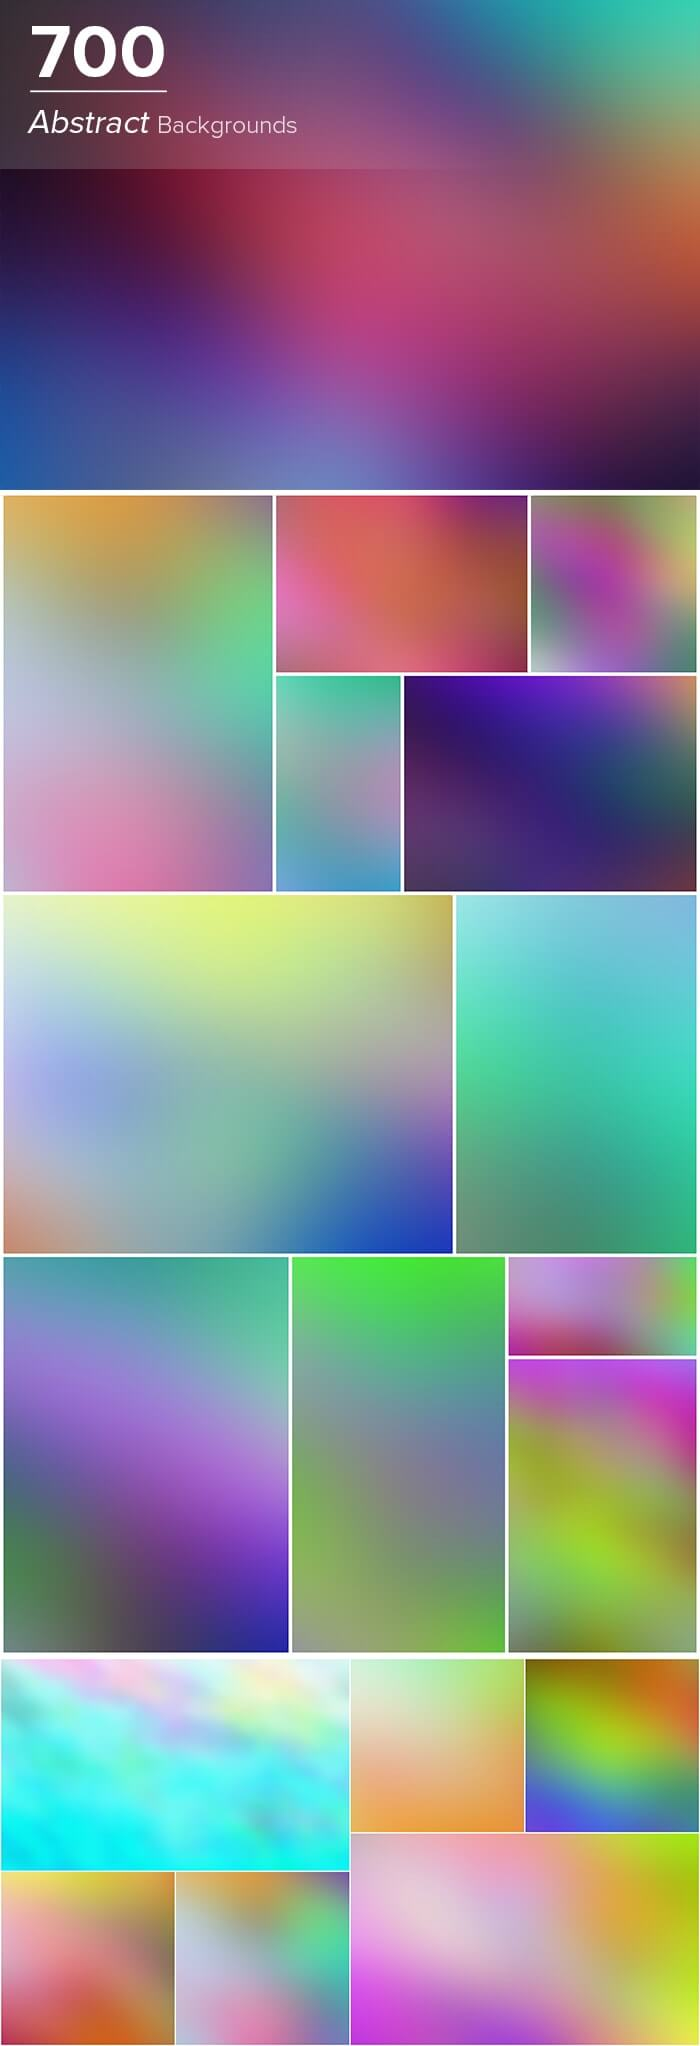 2000+ High Resolution Digital Backgrounds Bundle - $29 - 700 Abstract Backgrounds